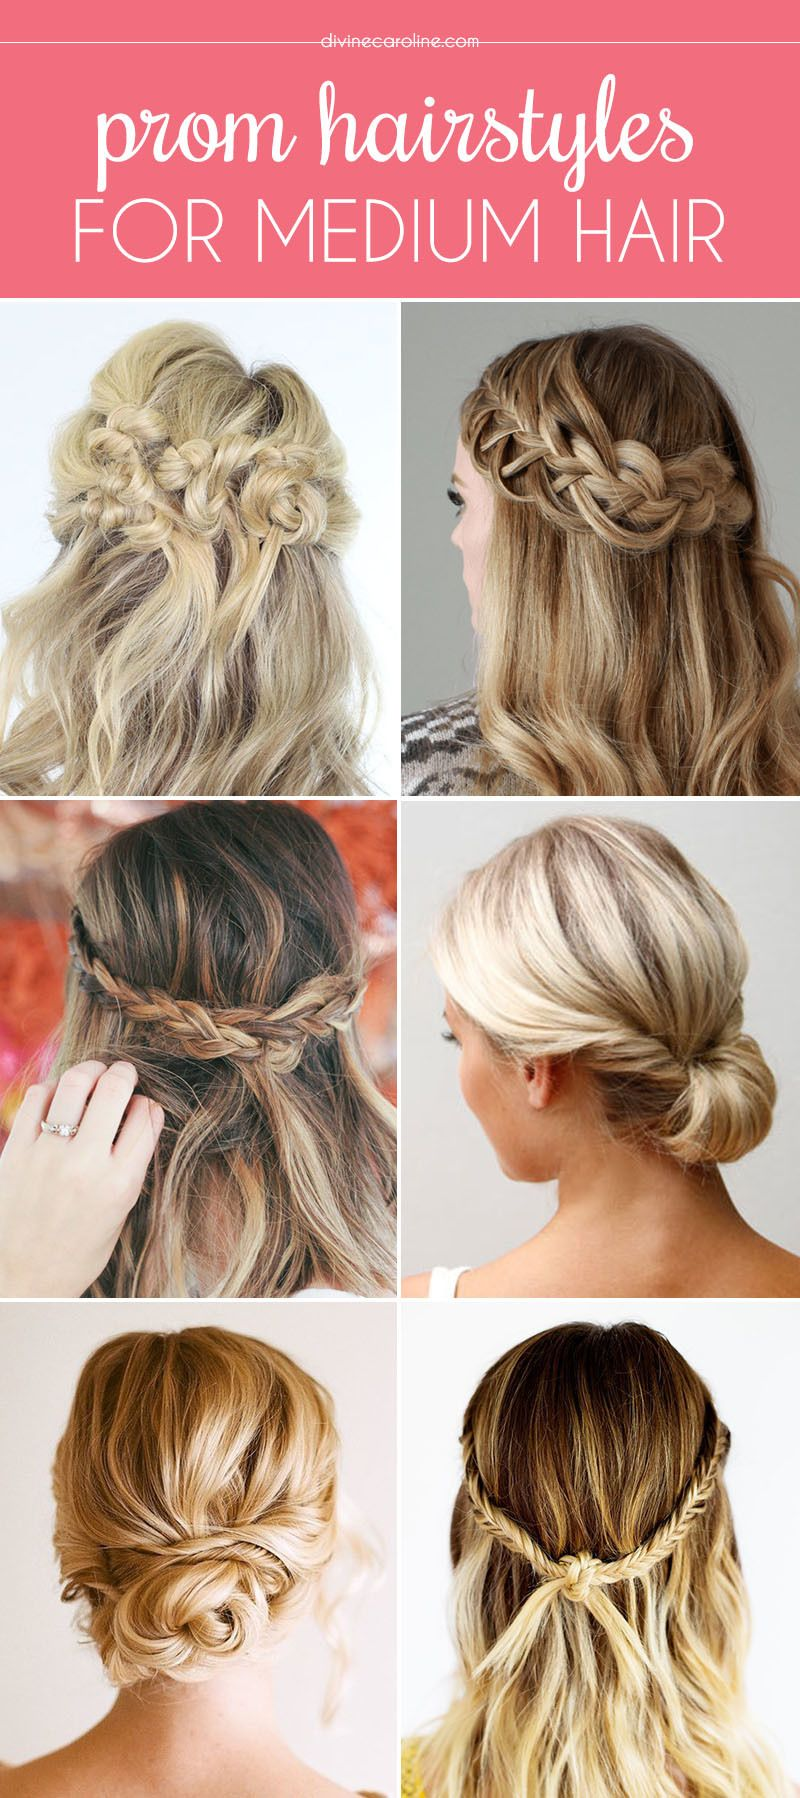 Our Favorite Prom Hairstyles For Medium Length Hair More Medium Length Hair Styles Medium Hair Styles Braids For Medium Length Hair